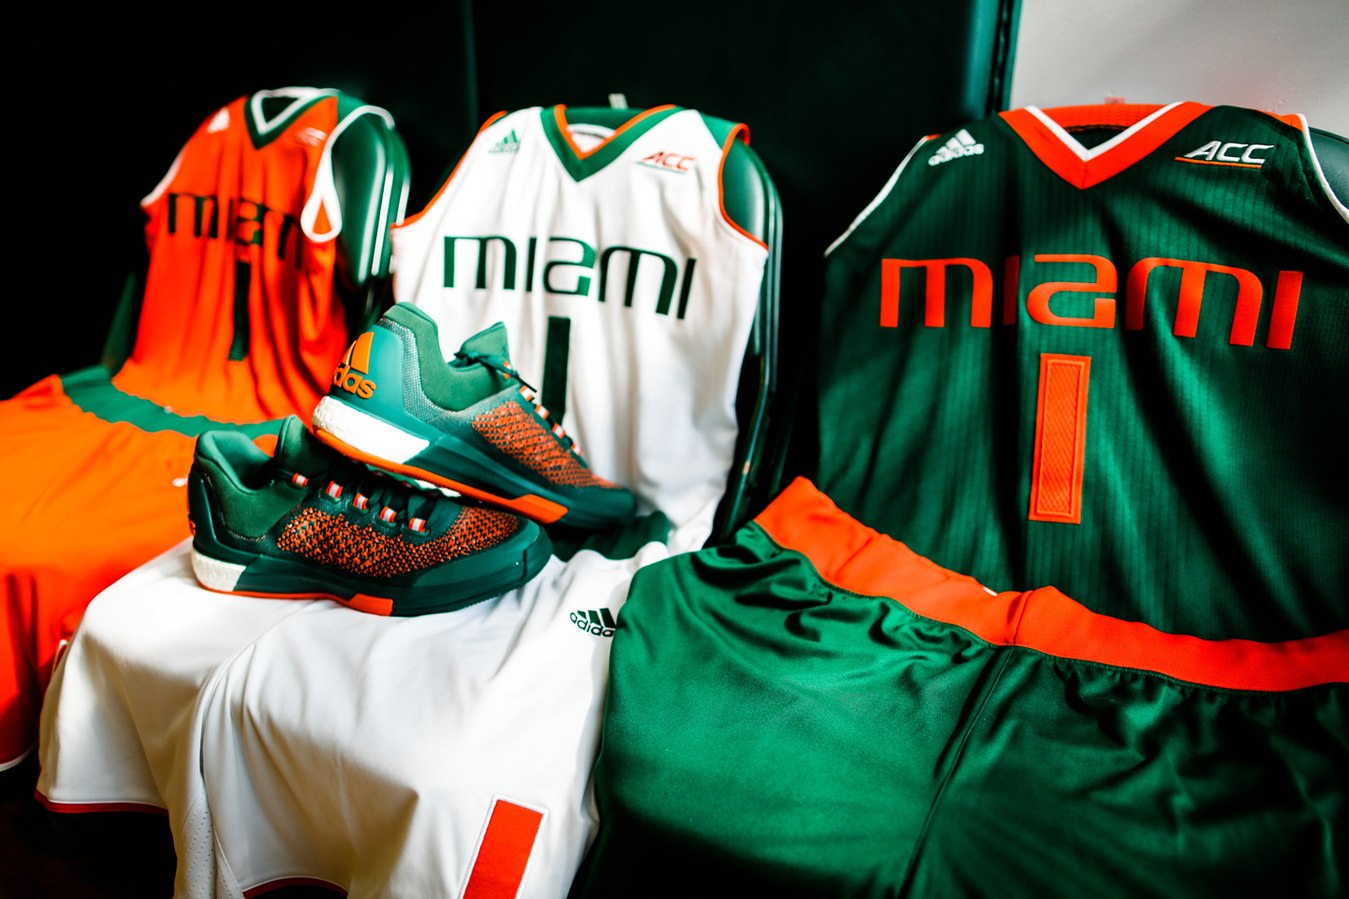 a758c8d27d2 Miami s basketball teams unveil new uniforms. Feature photo courtesy  HurricaneSports.com.